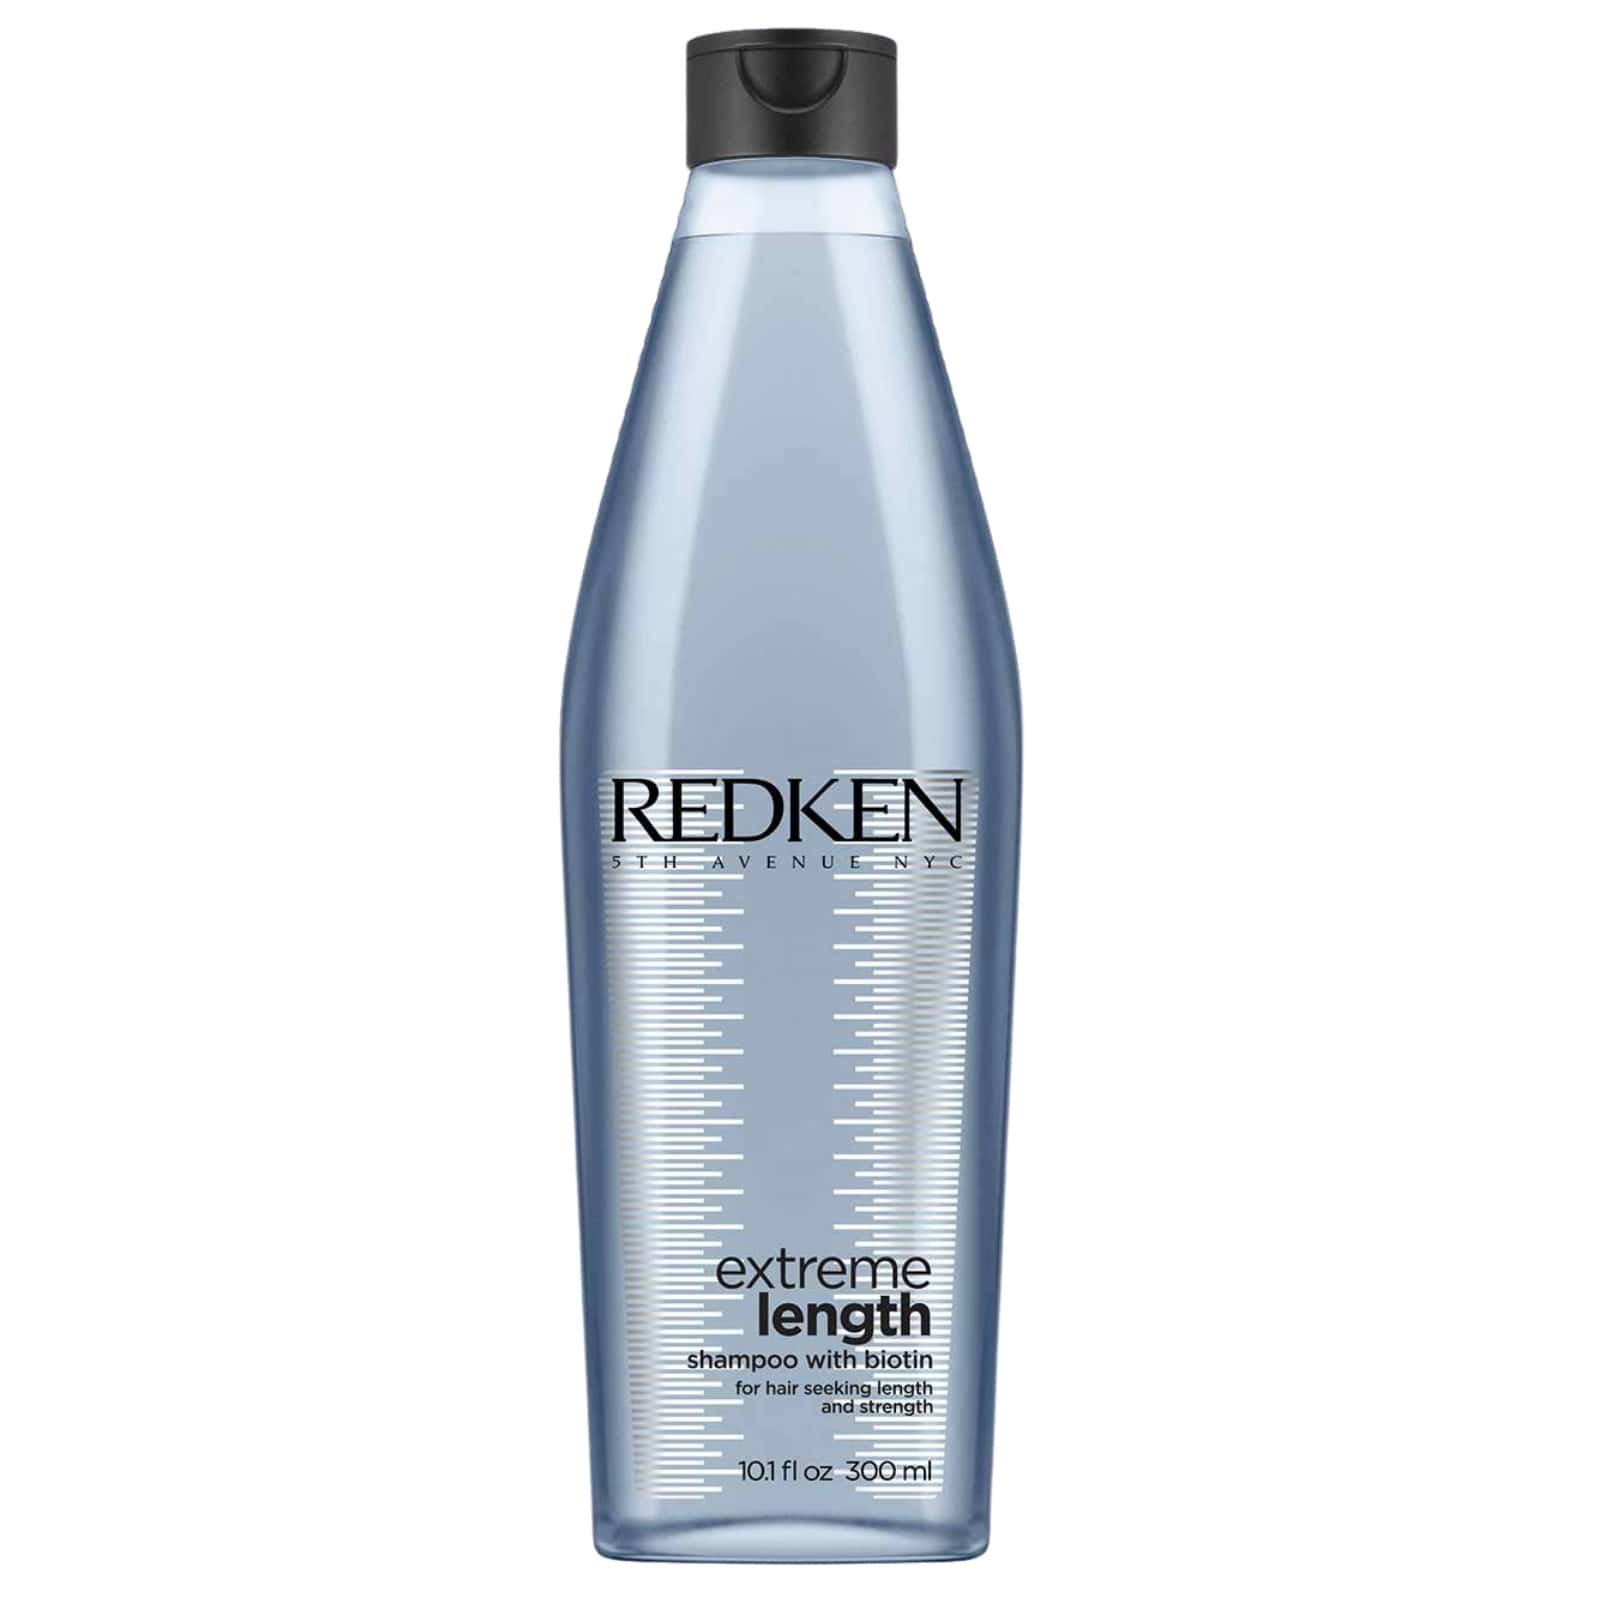 redken-extreme-length-shampoo-300ml